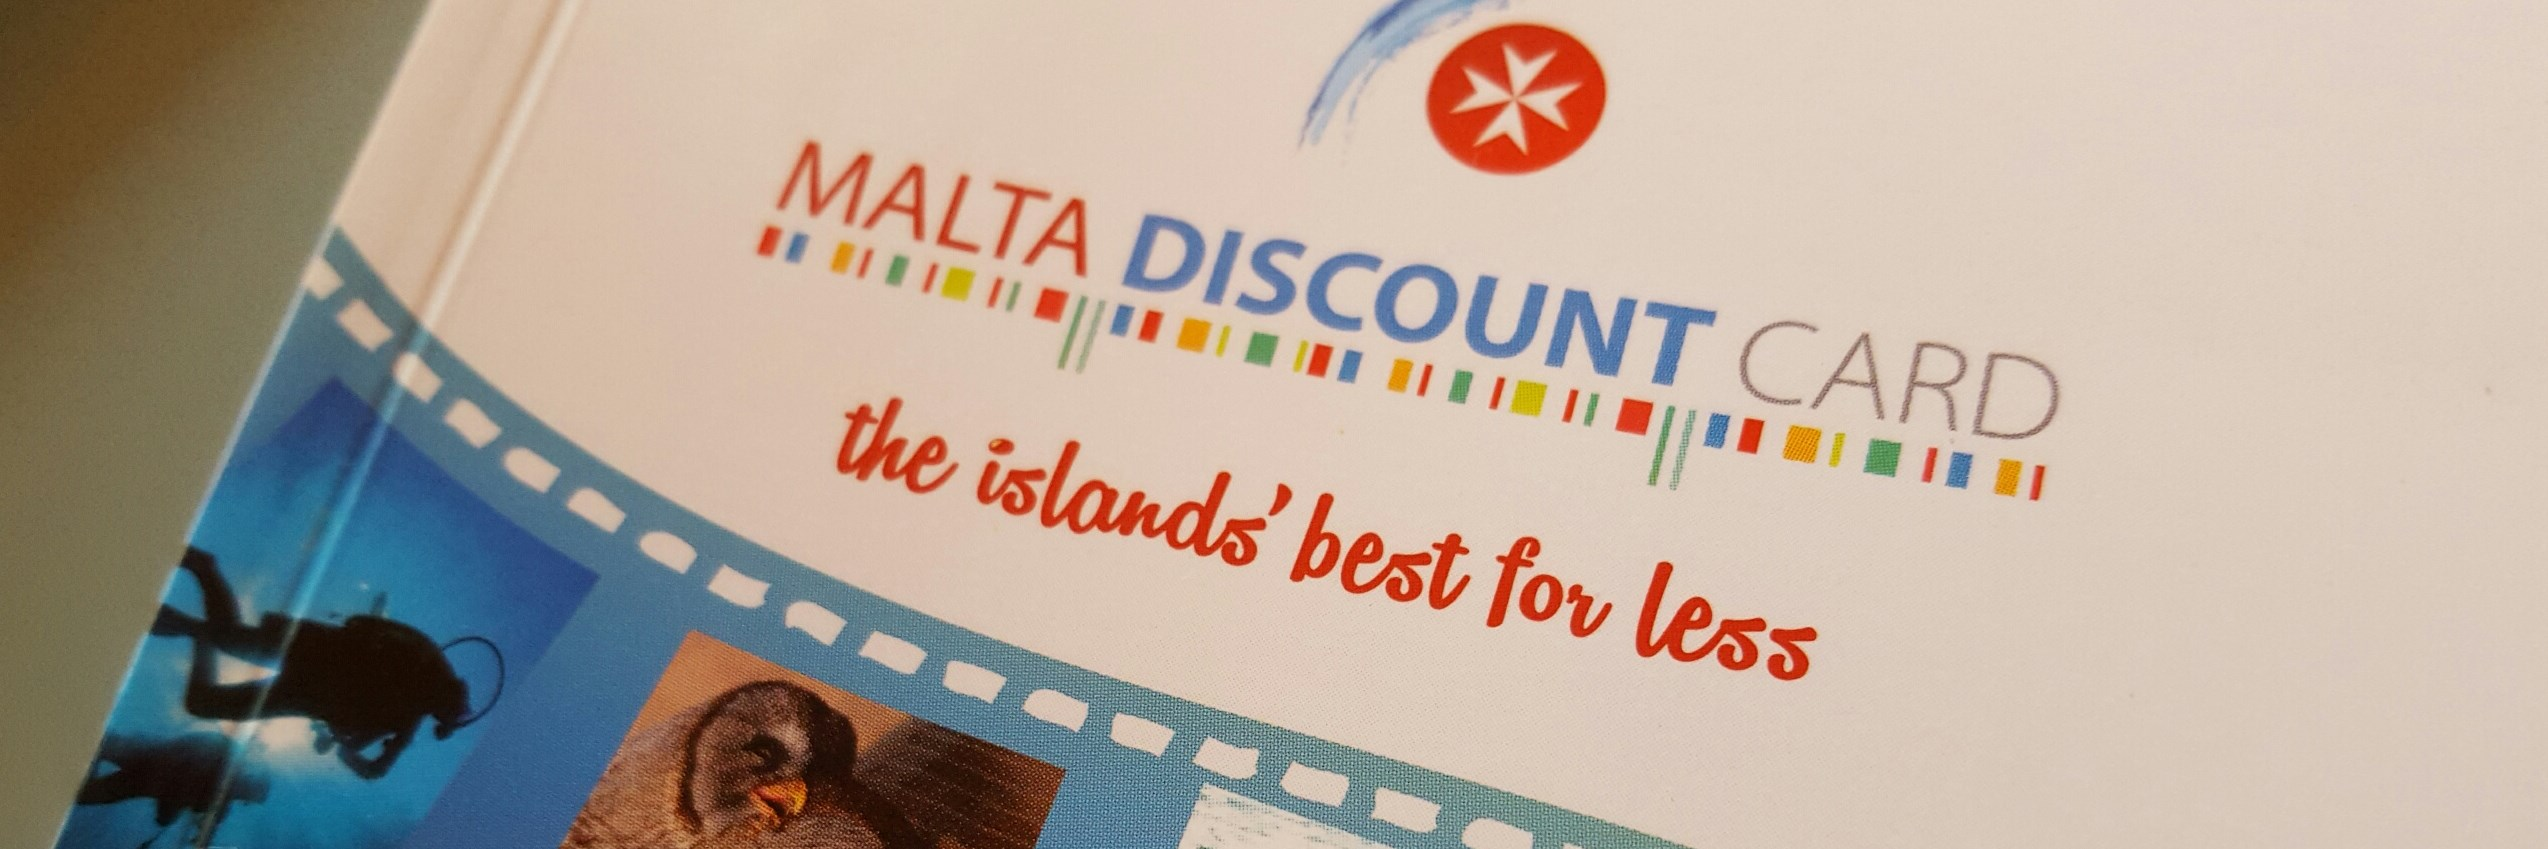 Malta discount card-the Island's best for less